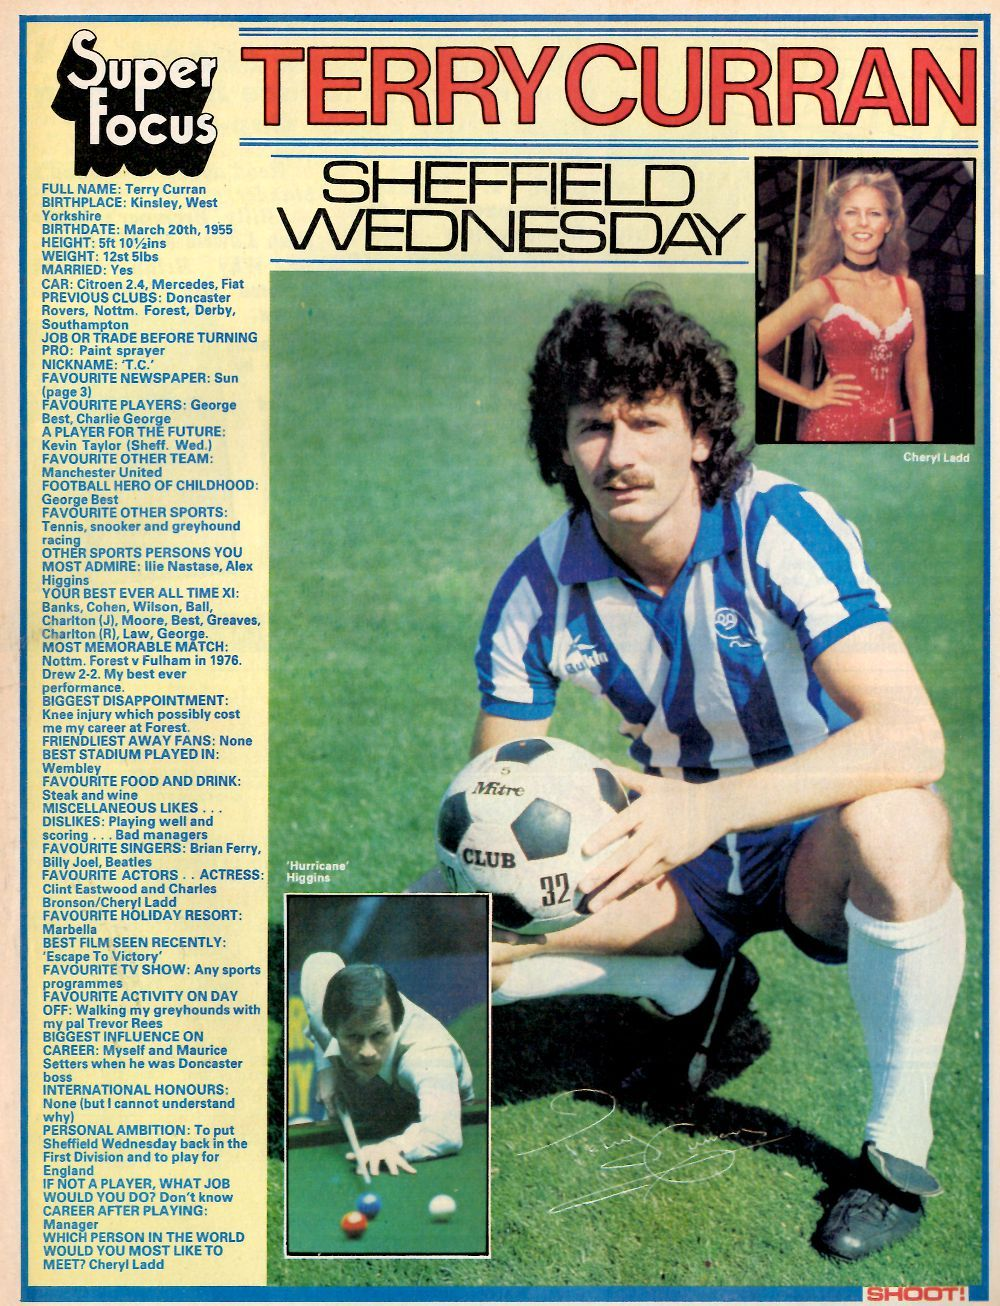 Super Focus of Terry Curran of Sheffield Wed with Shoot ...